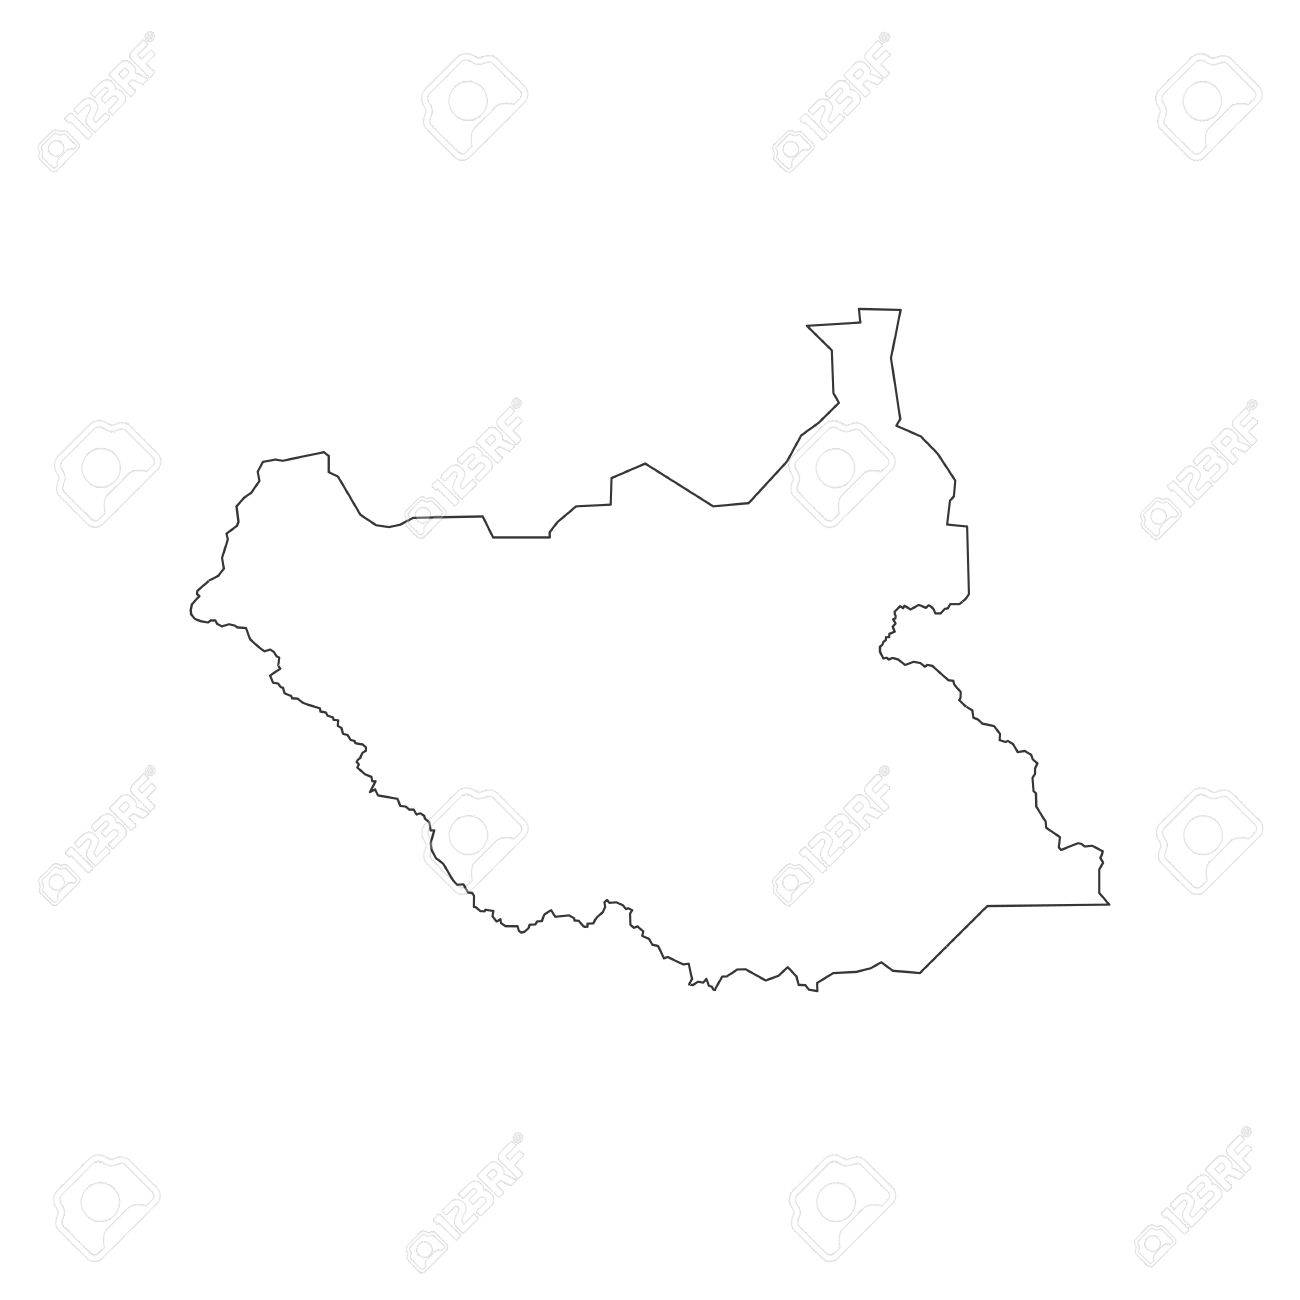 South Sudan Map Outline On The White Background Vector - south map outline